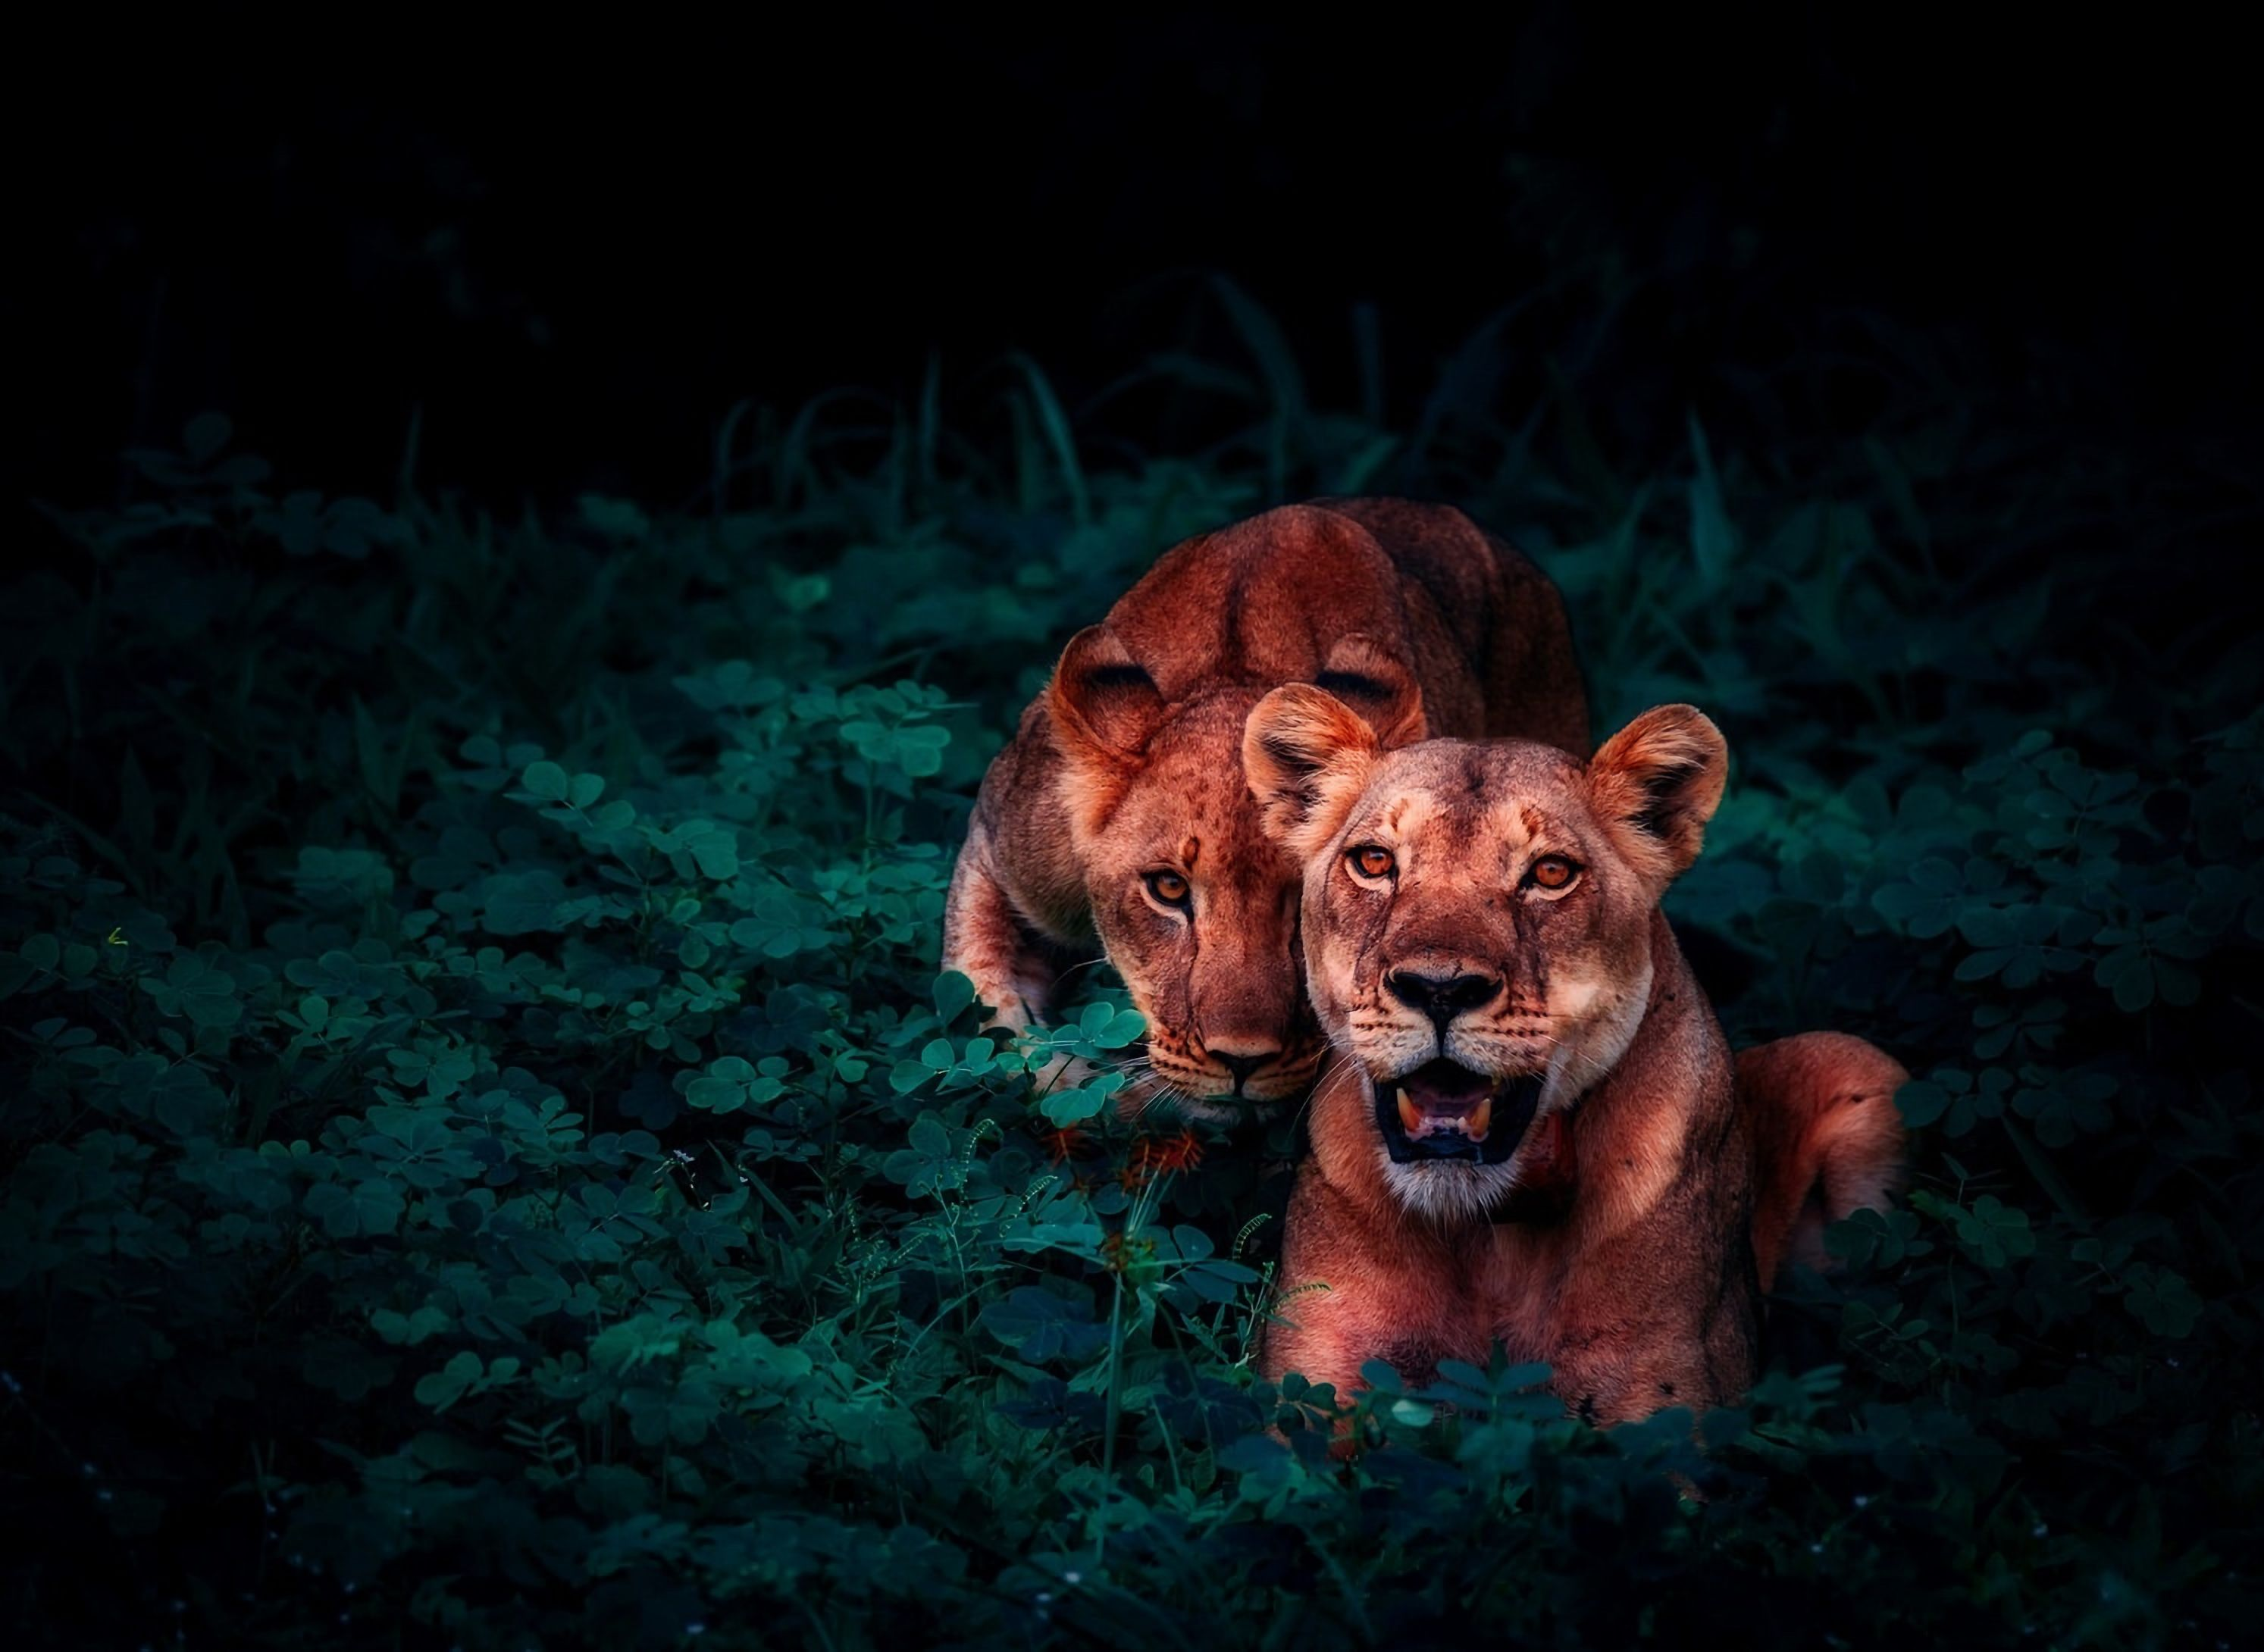 113105 download wallpaper Animals, Cubs, Young, Wildlife, Sight, Opinion, Lions screensavers and pictures for free